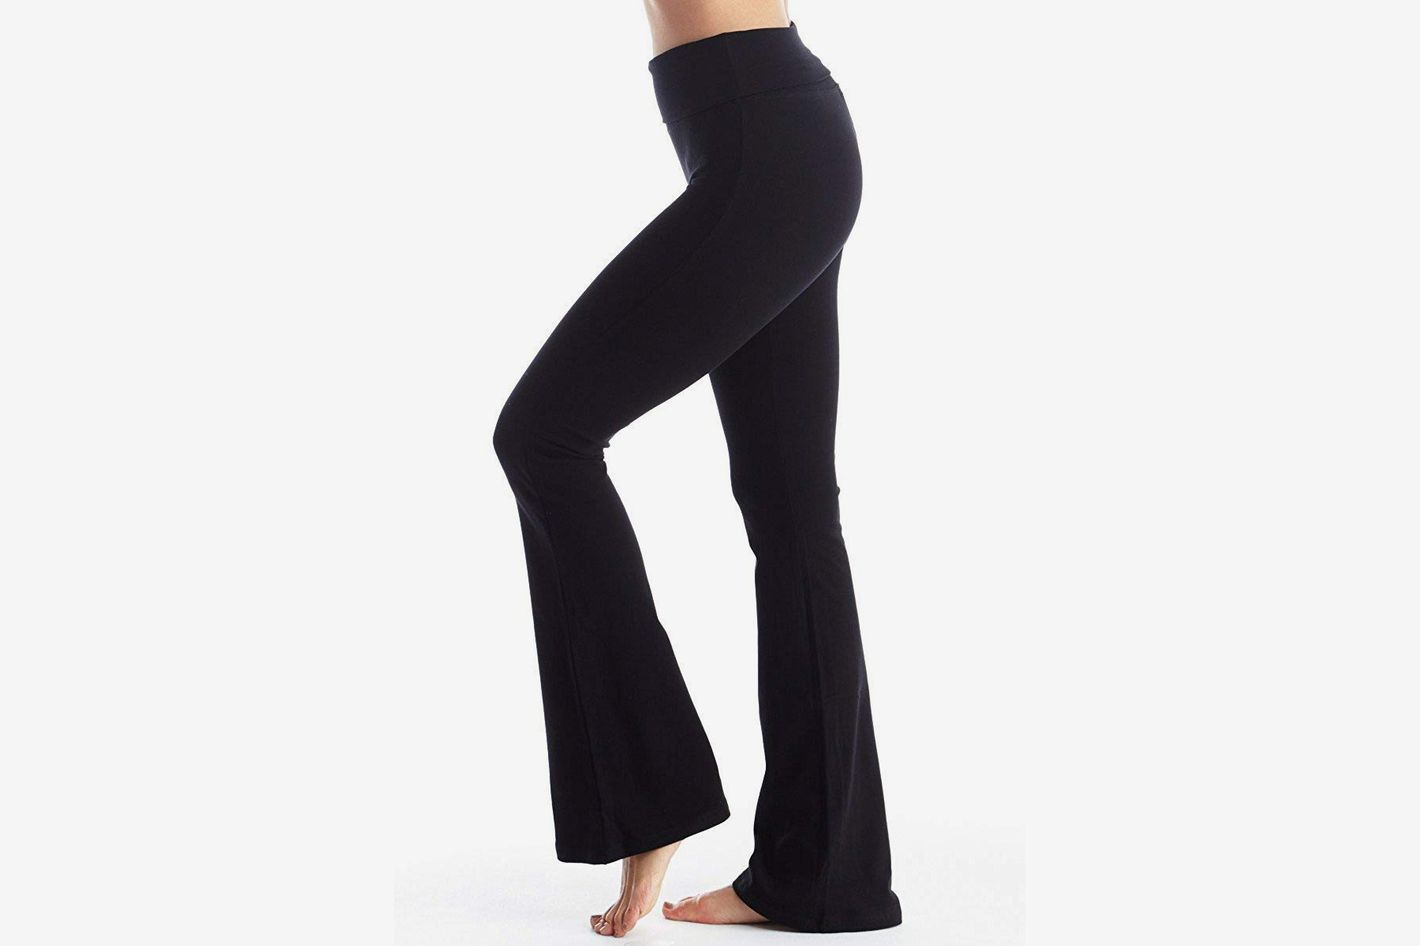 Viosi Fold Over Cotton Spandex Yoga Pants